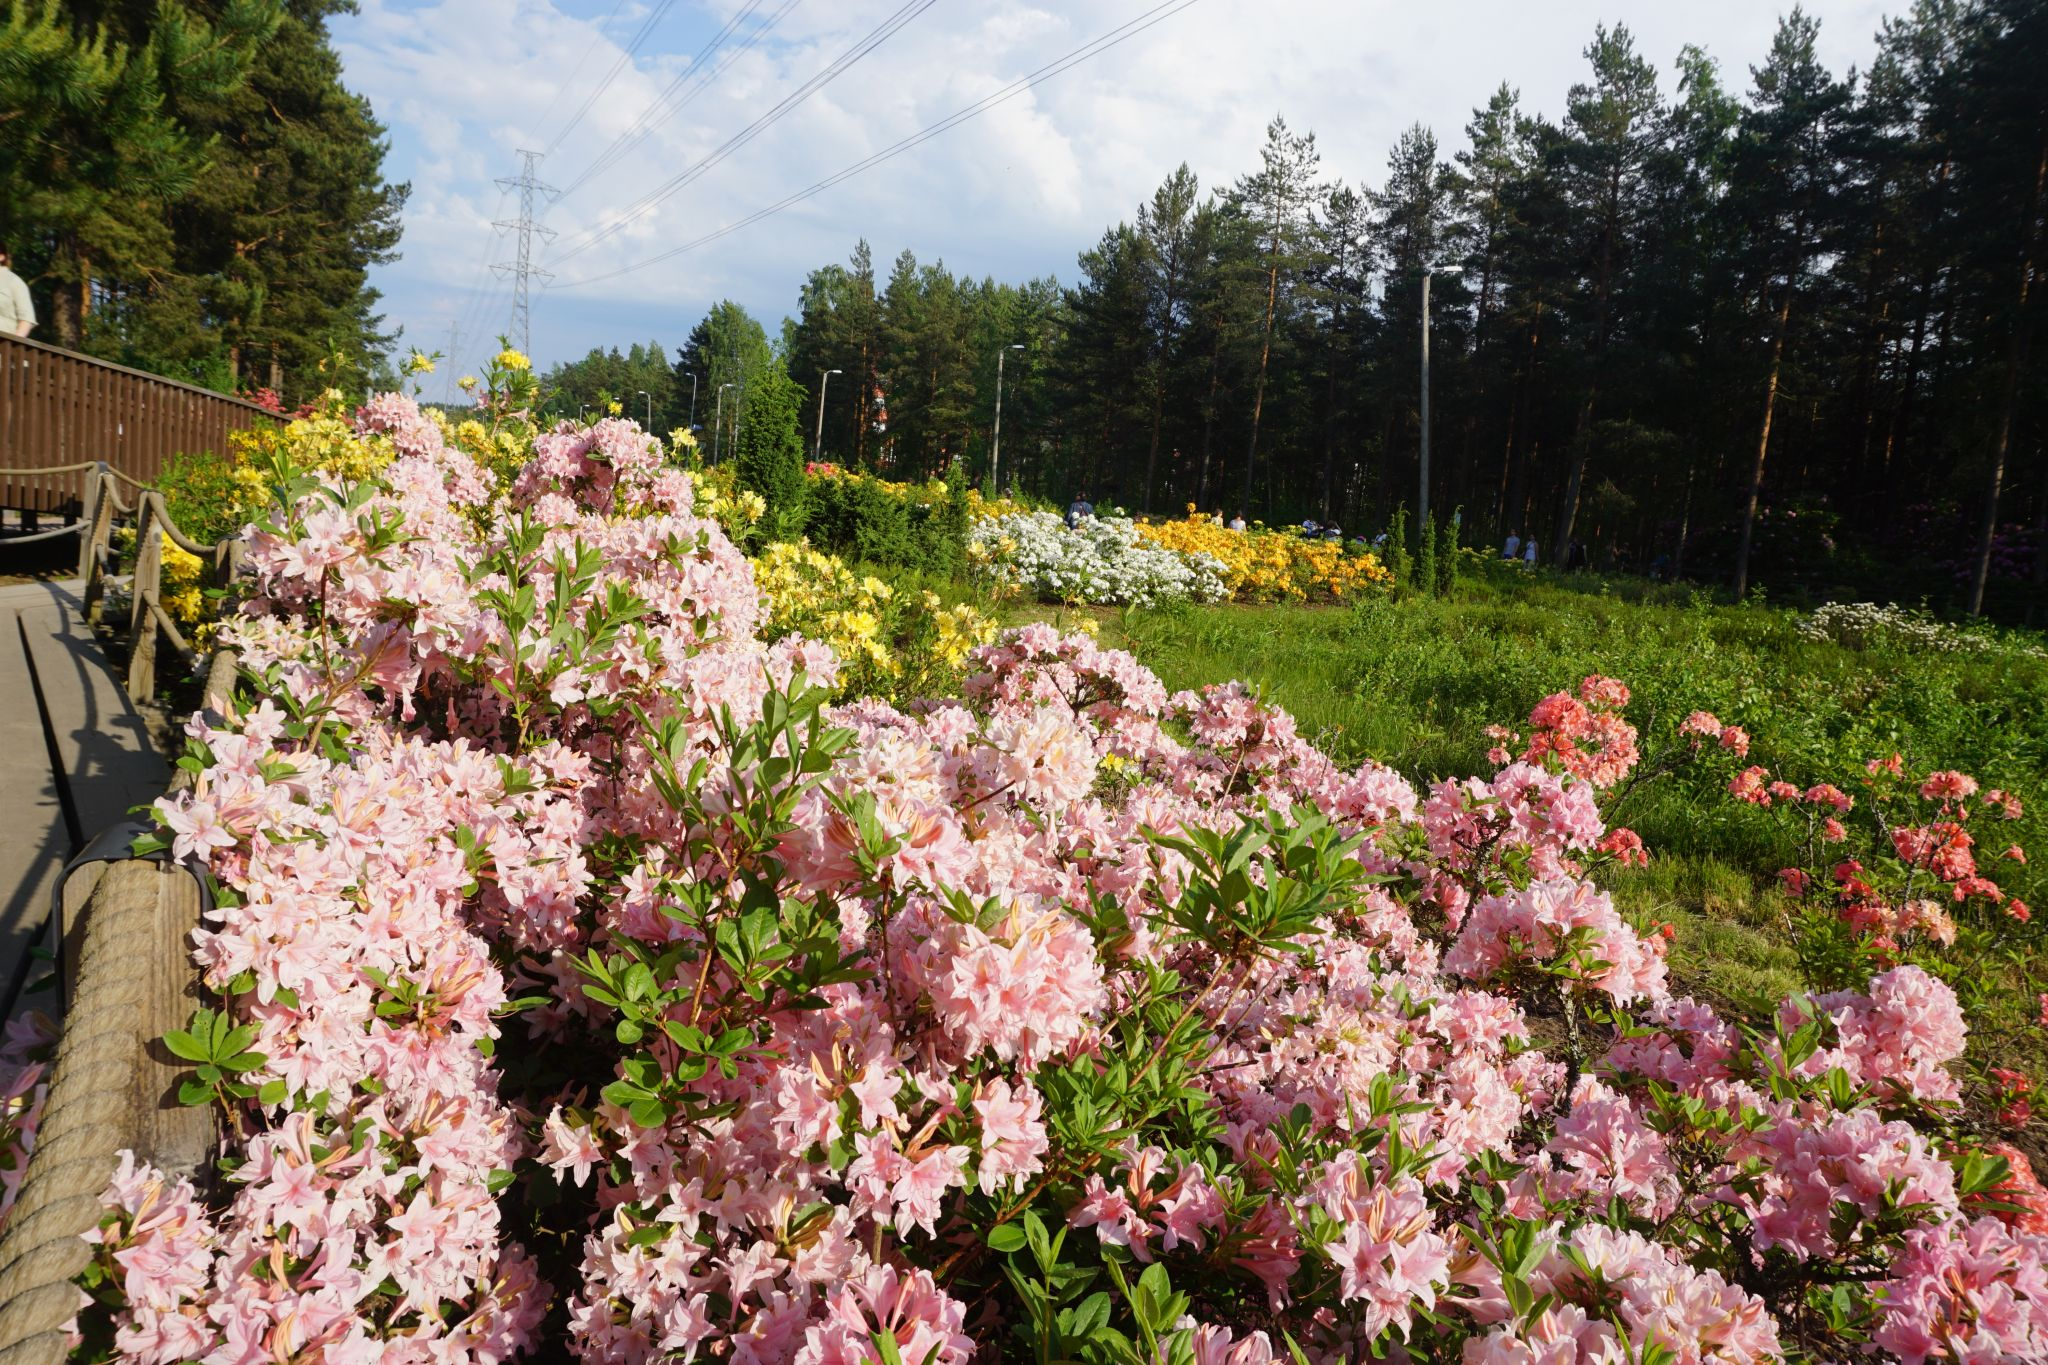 Visiting the Rhododendron Park in Helsinki